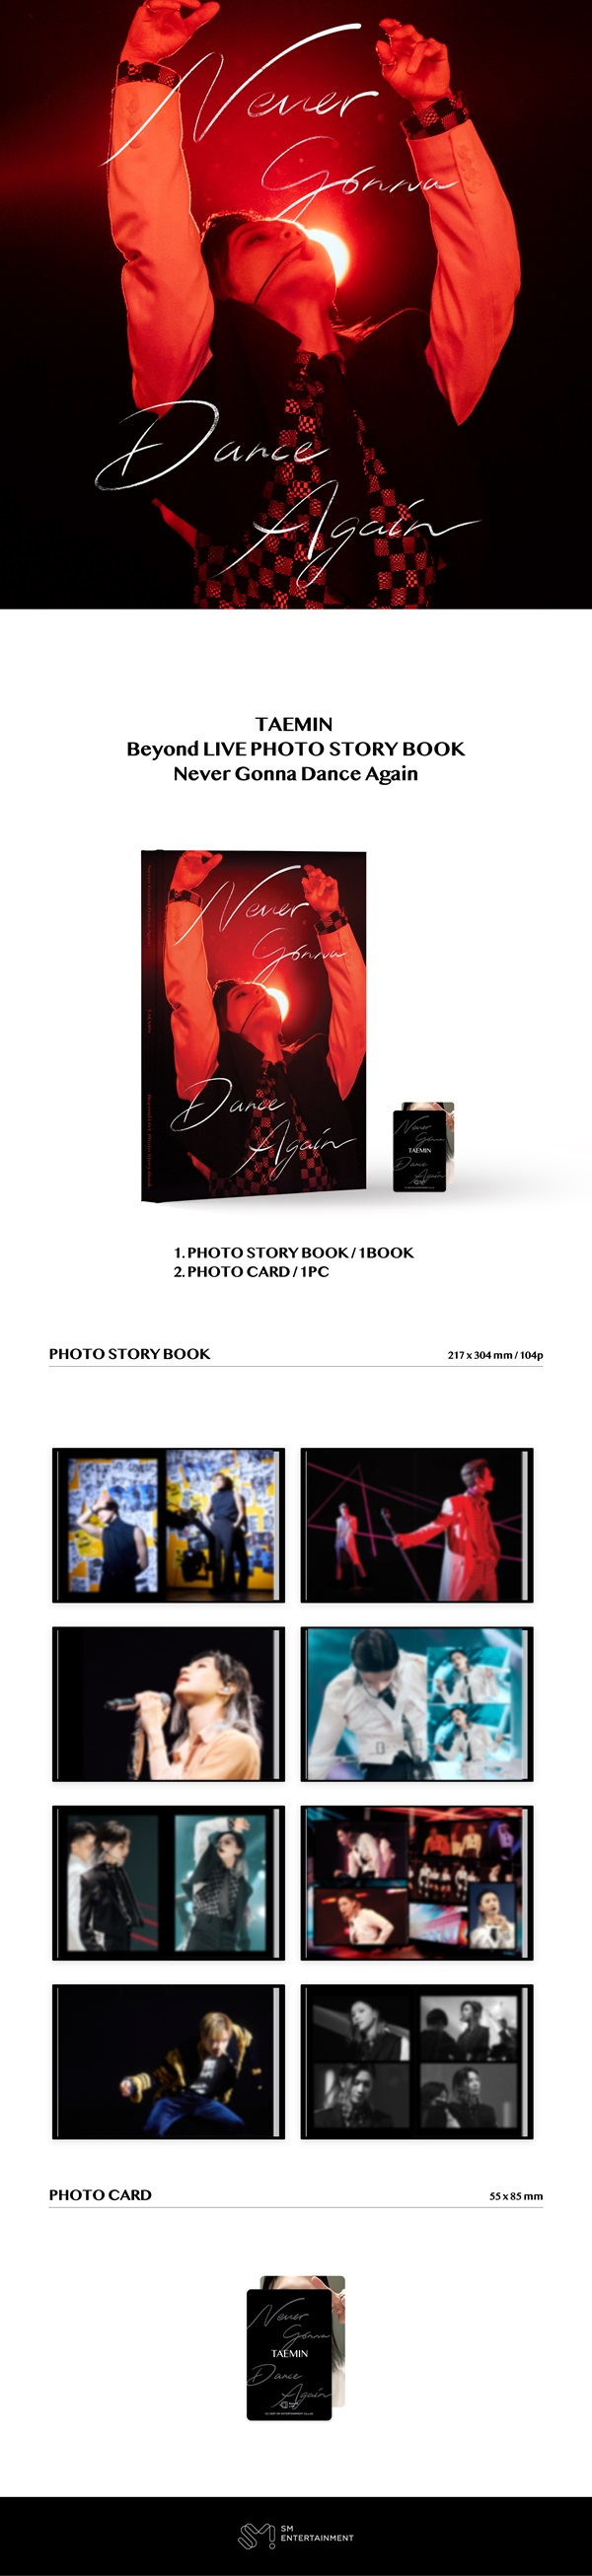 Beyond LIVE PHOTO STORY BOOK - Never Gonna Dance Again_2